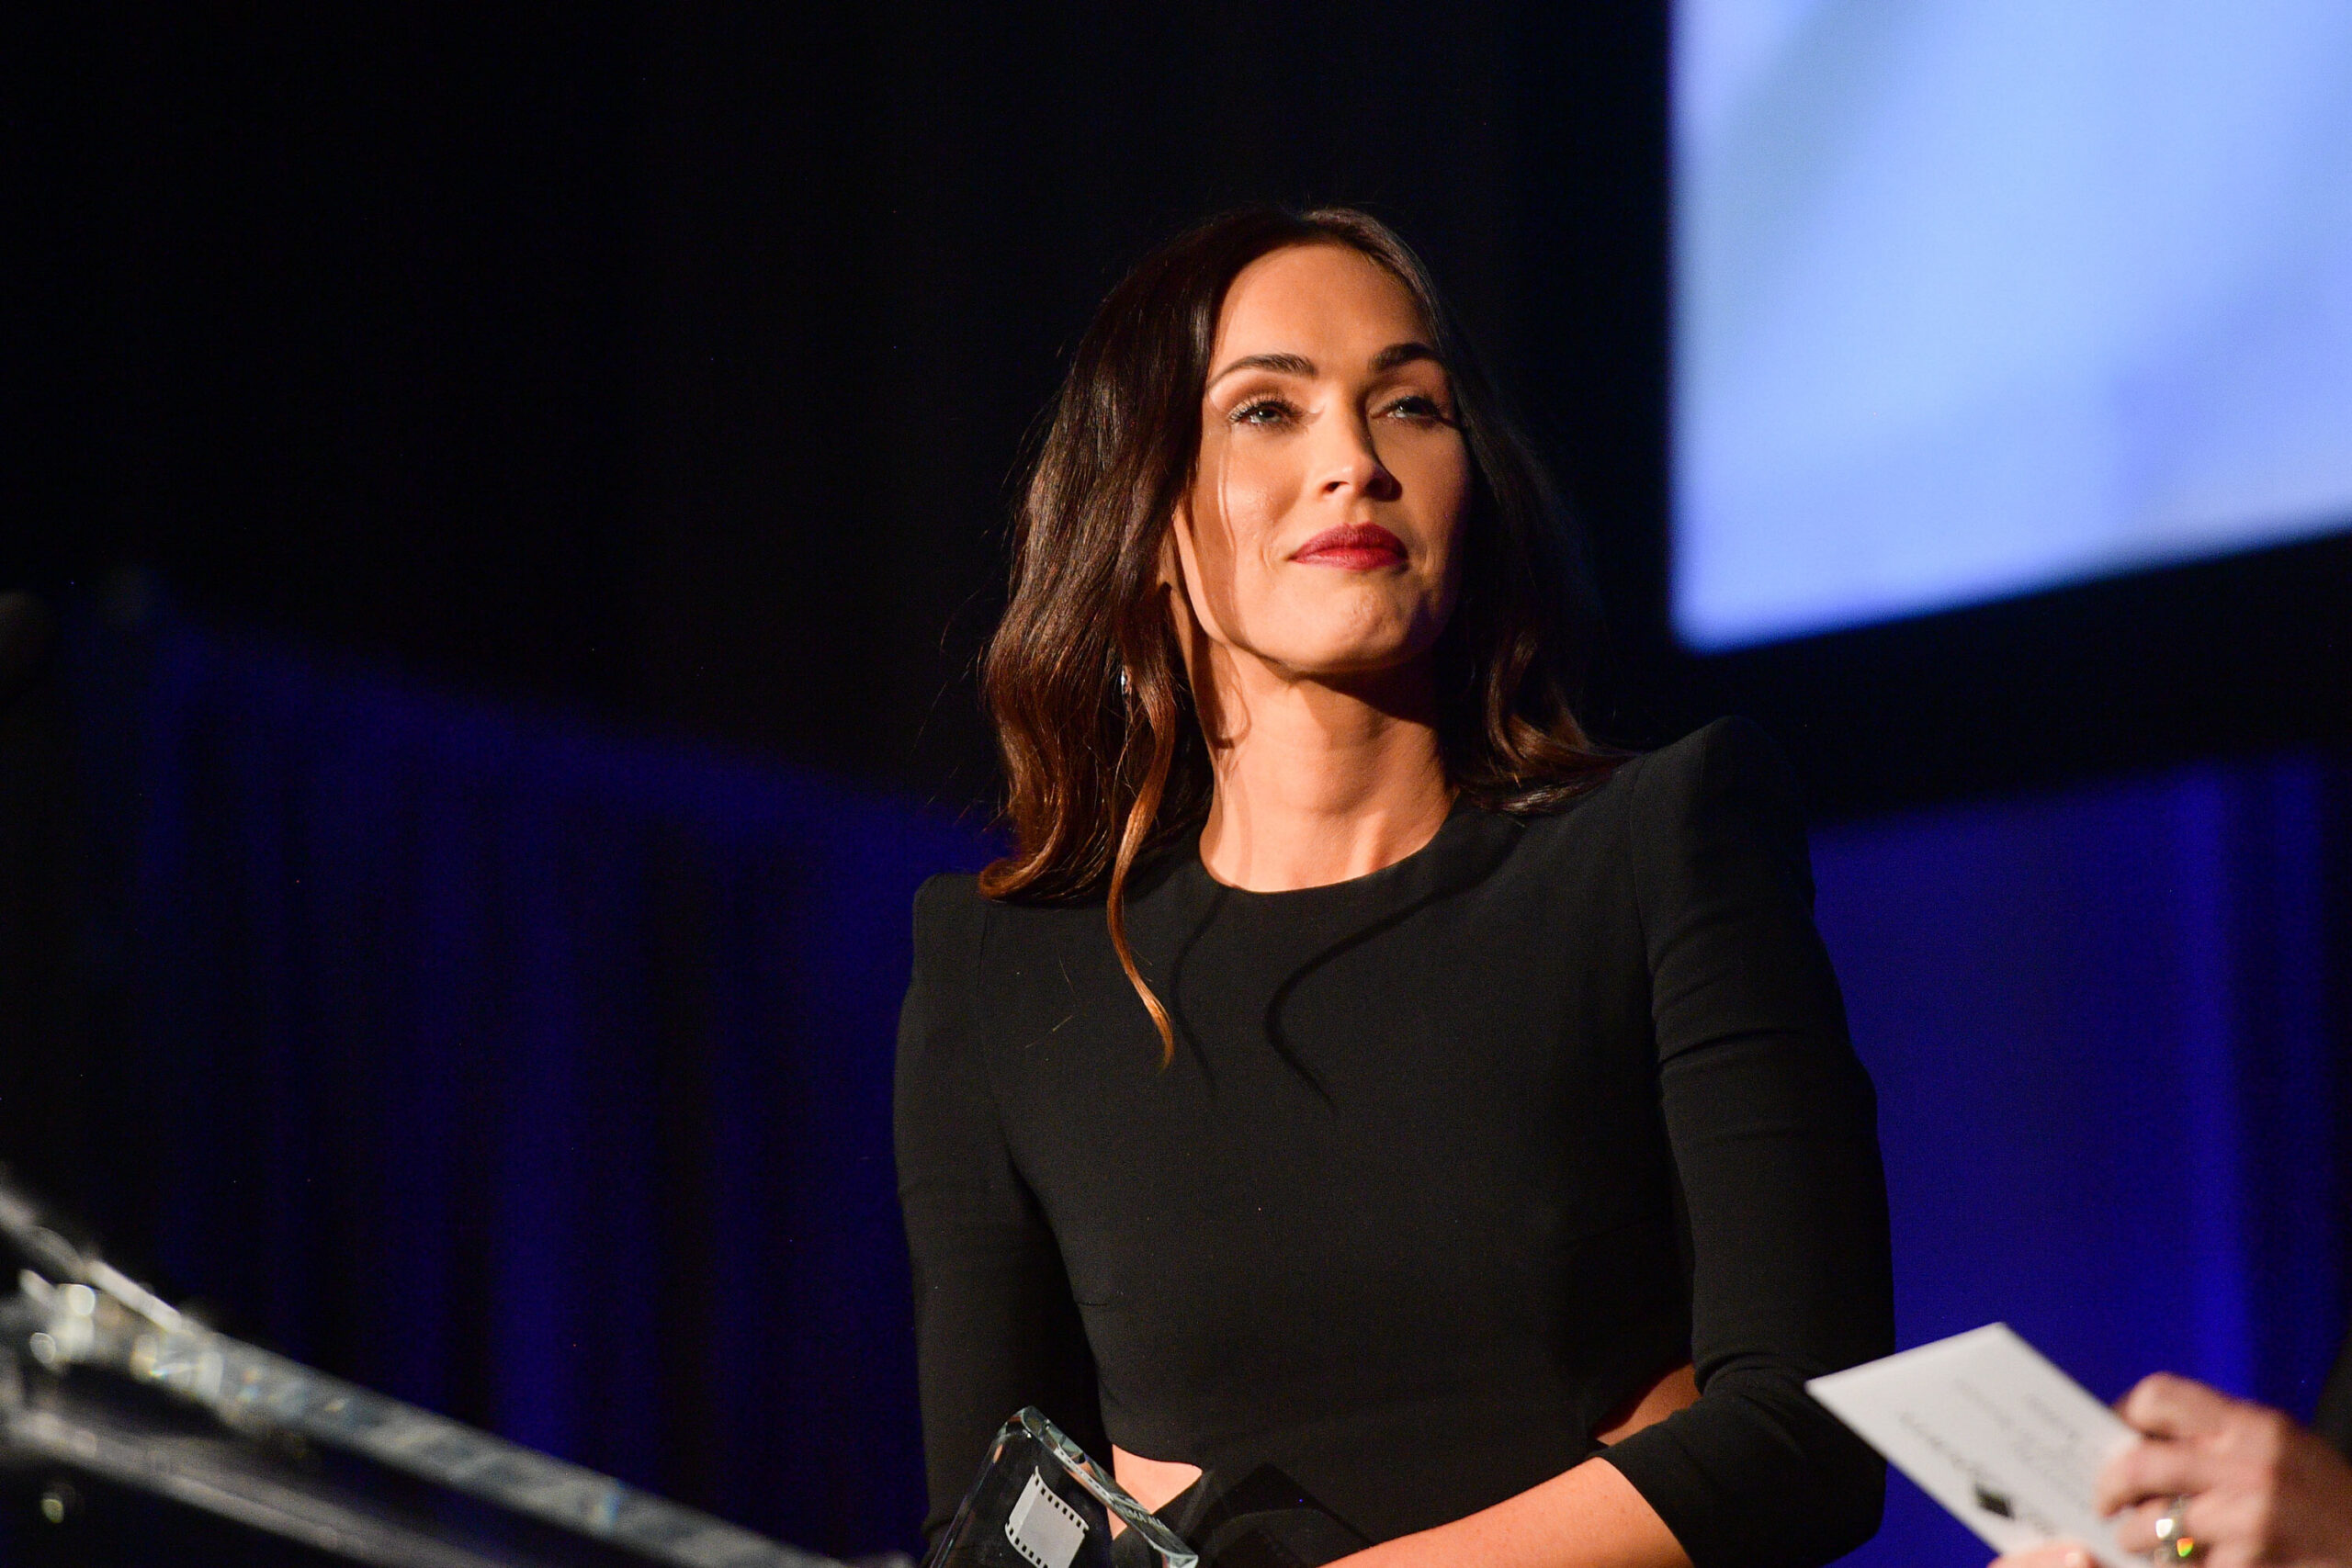 <i>Matt Winkelmeyer/Getty Images</i><br/>Megan Fox says she no longer drinks after her experience at the Golden Globes in 2009.